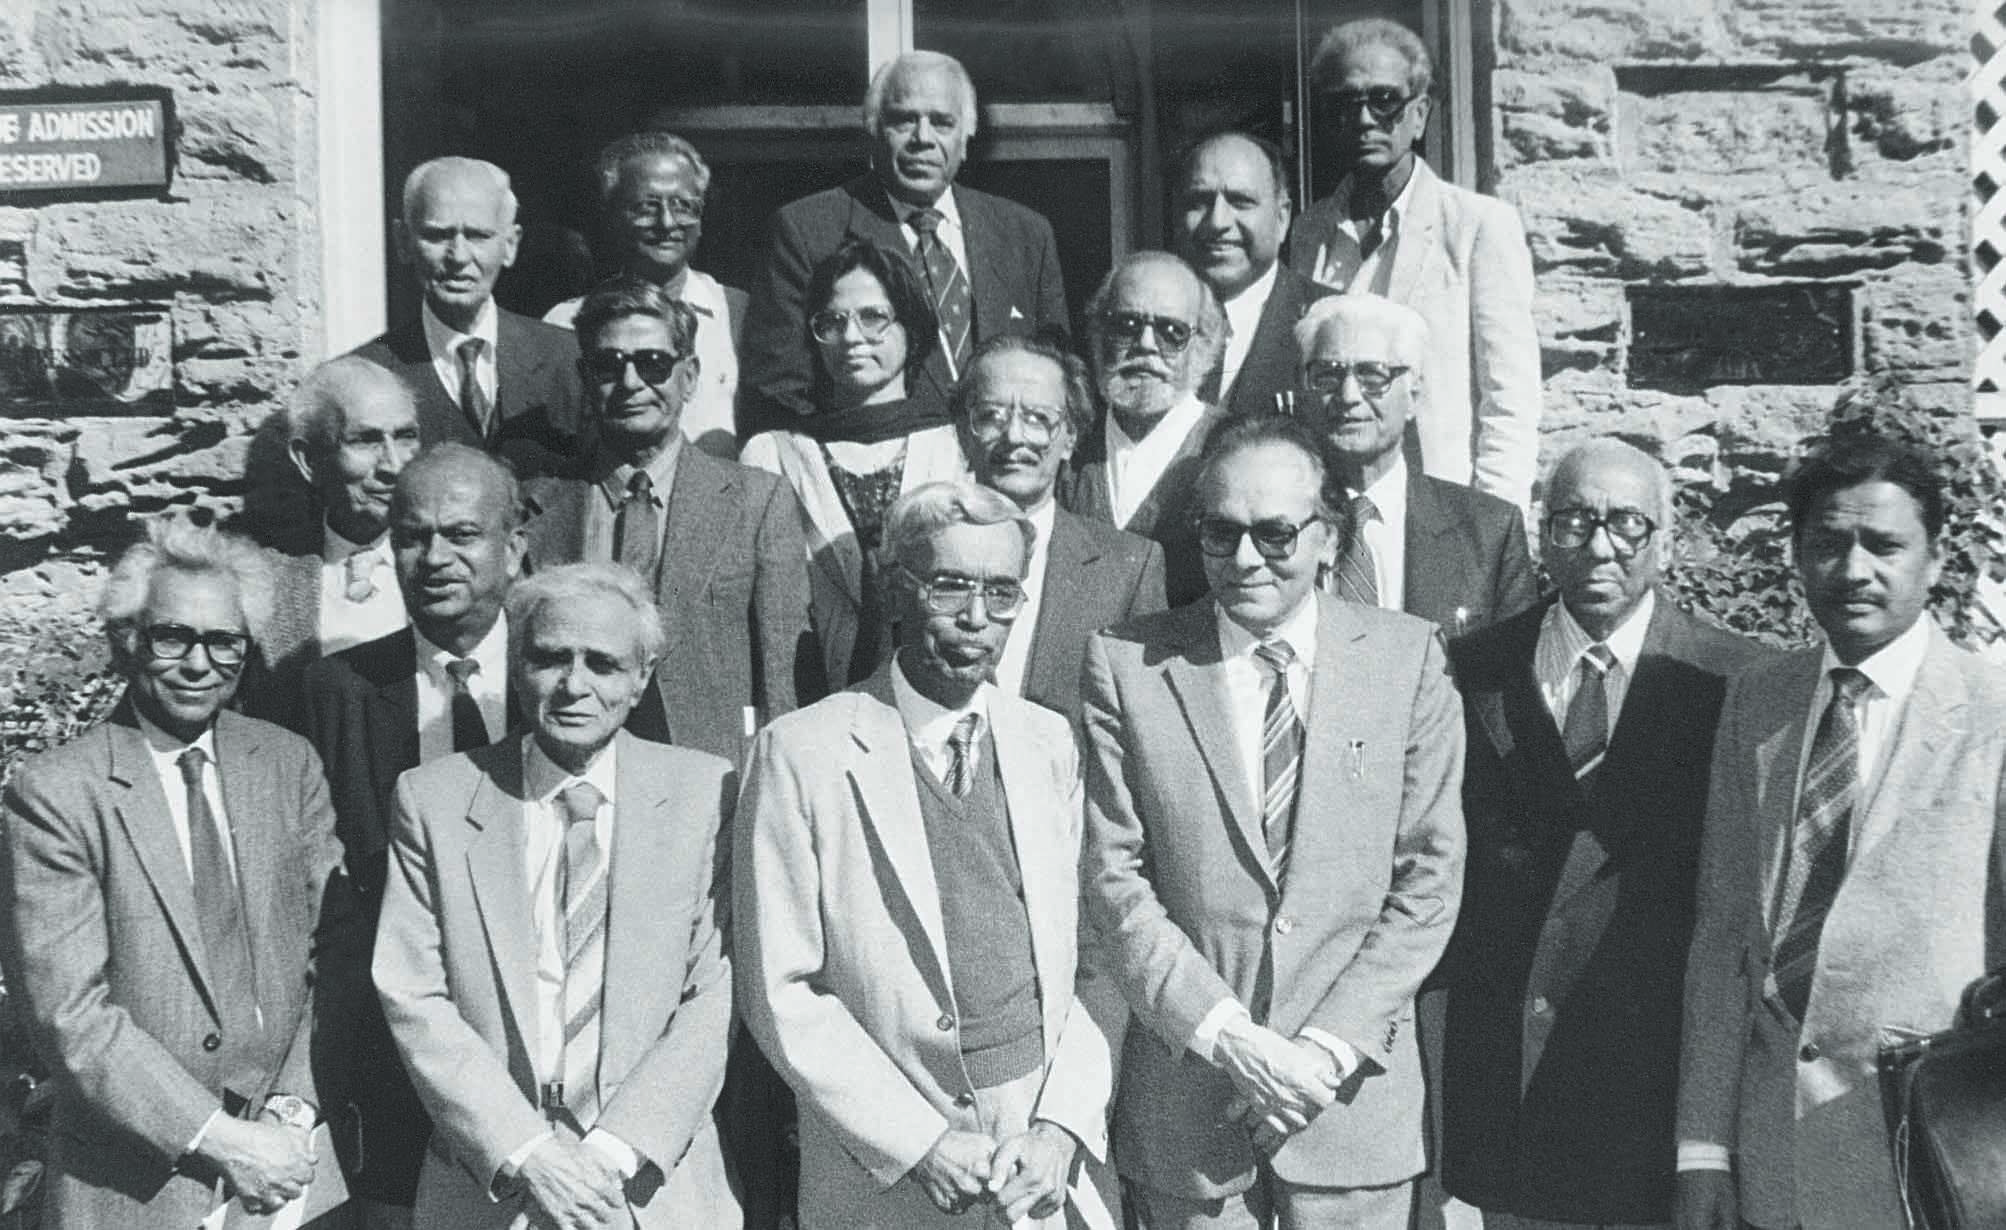 Dawn Editor Ahmed Ali Khan (third from right) with long-time colleagues at the Karachi Press Club in January 1994. The others (from left to right, first row) are: Hasan Abidi, Abdul Hameed Chapra, M.A. Qayyum, M.A. Shakoor, Mohsin Ali, Habib Khan Ghori. In the second row are: Fazal Imam, Ghayurul Islam, Zubeida Mustafa, M.A. Majid, Saleem Asmi and M.B. Naqvi. Third row features Hazoor Ahmed Shah, M.J. Zahedi, M.H. Askari, Salahuddin and Iqbal Jafri. | Photo: Mujib / White Star